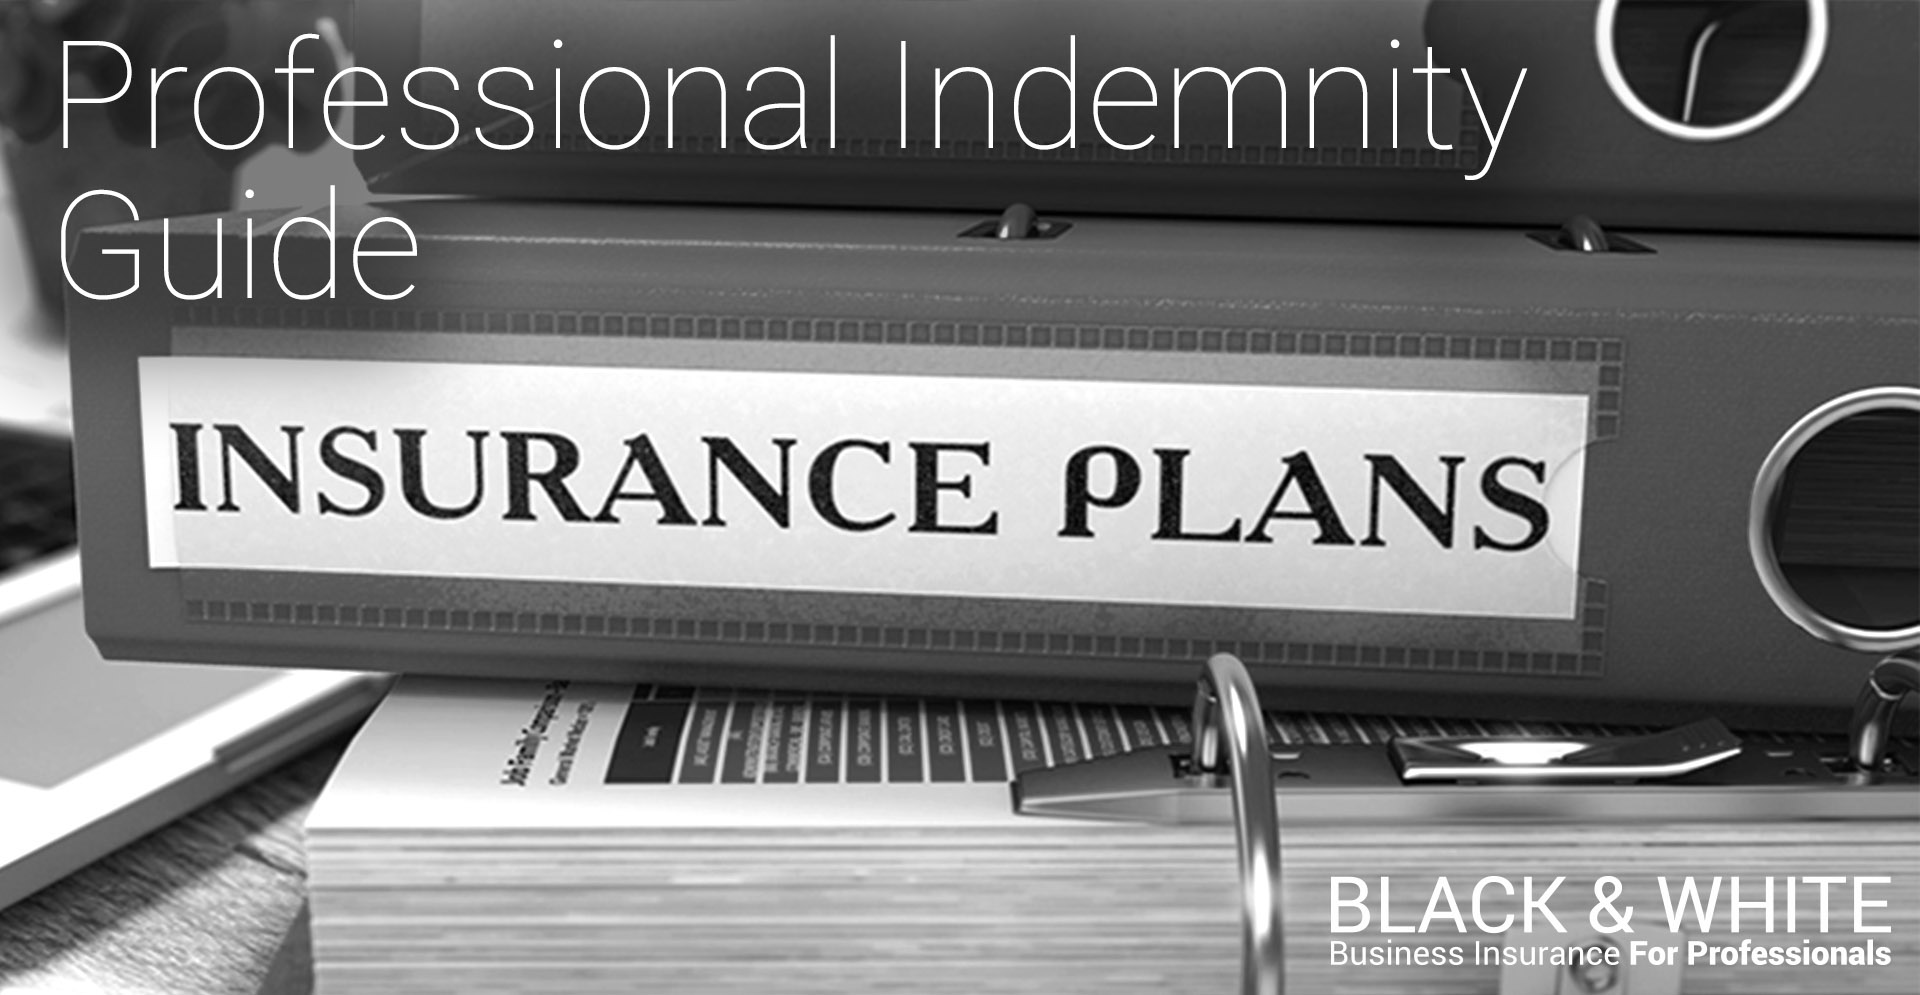 Professional Indemnity Insurance Guide | Black and White